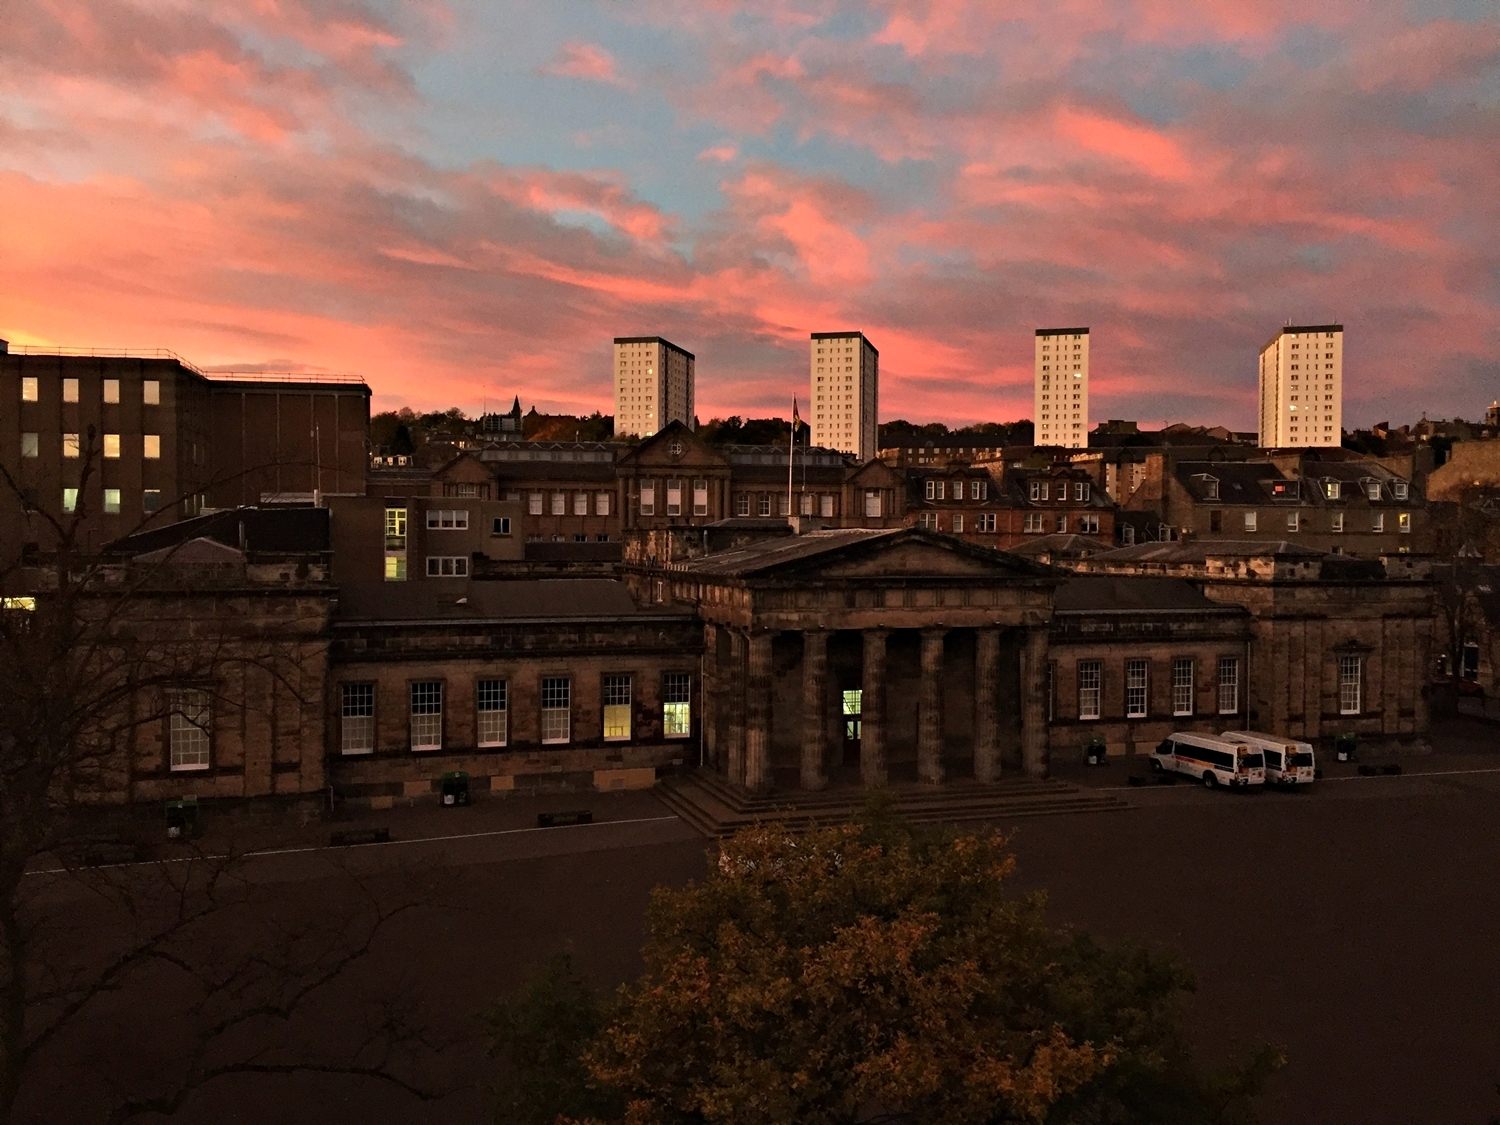 The sunset in Dundee